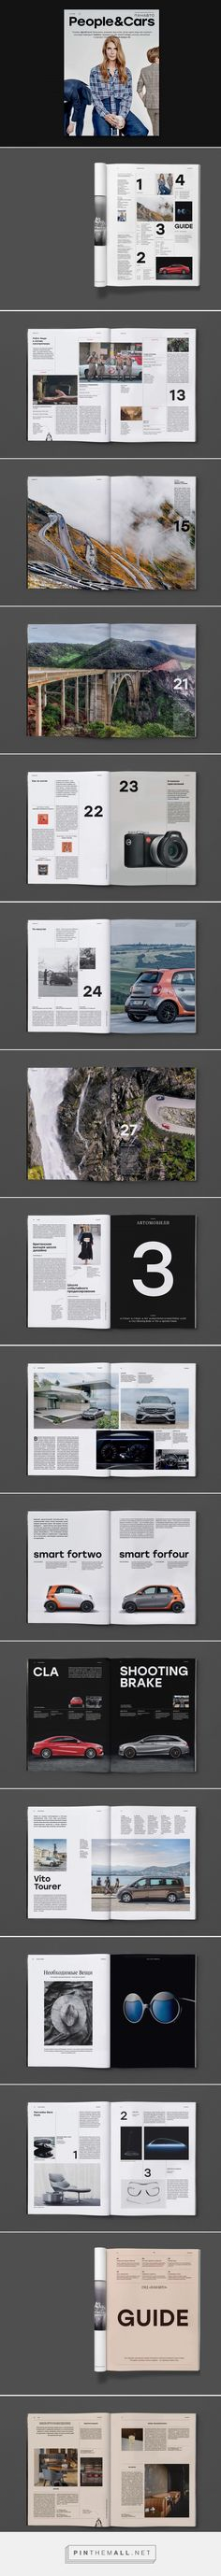 People&Cars for Mercedes on Behance... - a grouped images picture - Pin Them All